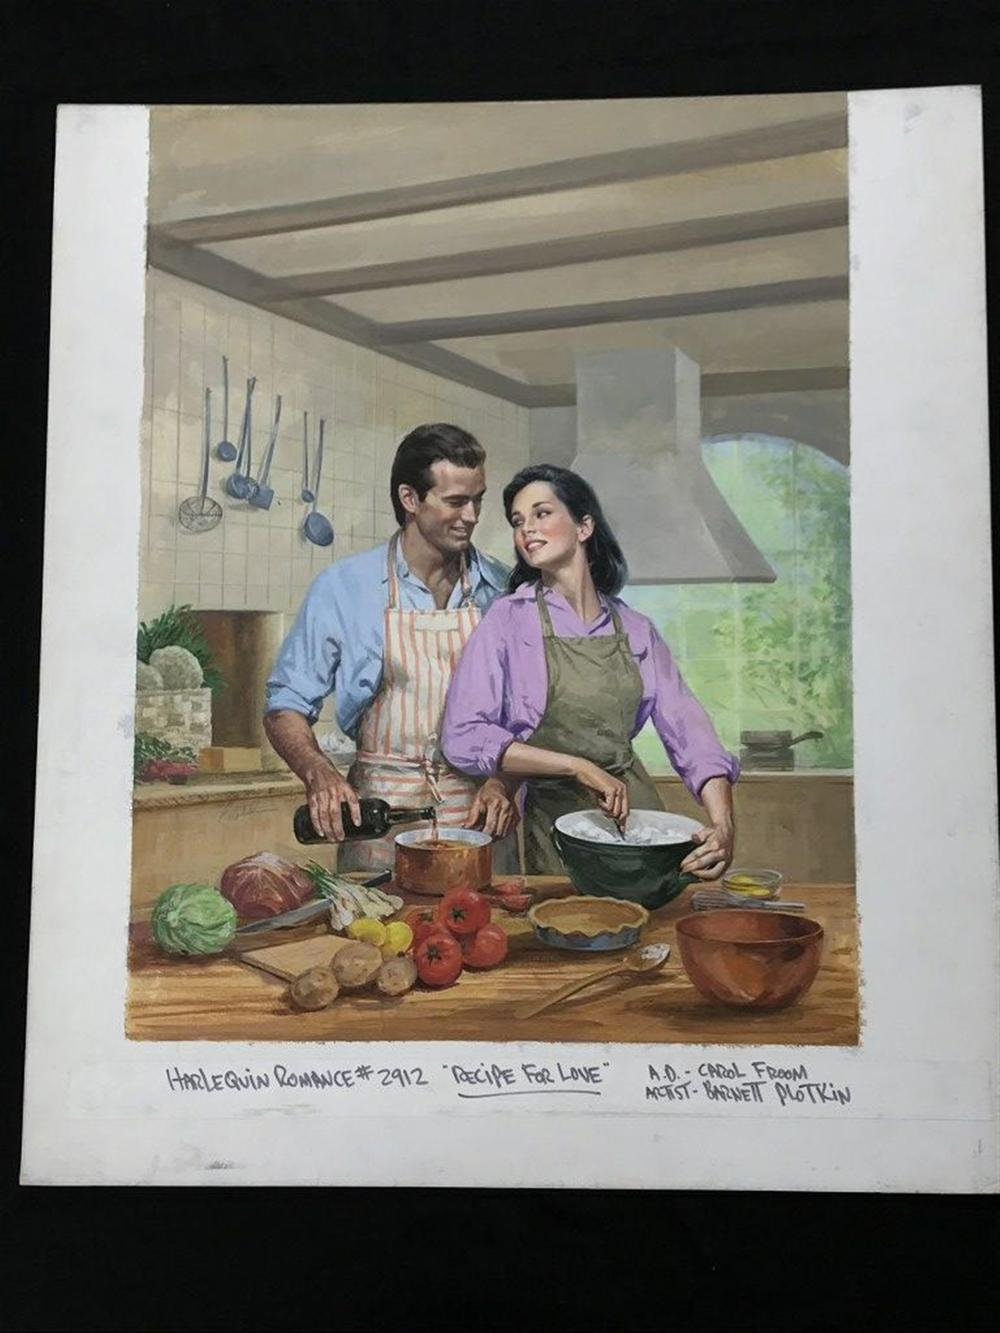 "ORIGINAL HARLEQUIN ROMANCE ILLUSTRATION FOR COVER, BOOK TITLED RECIPE FOR LOVE, ARTIST IS BARNETT PLOTKIN.  CIRCA LATE 1980'S, MEASURES 20"" X 17 1/2"". FROM COLLECTION WE ARE SELLING."